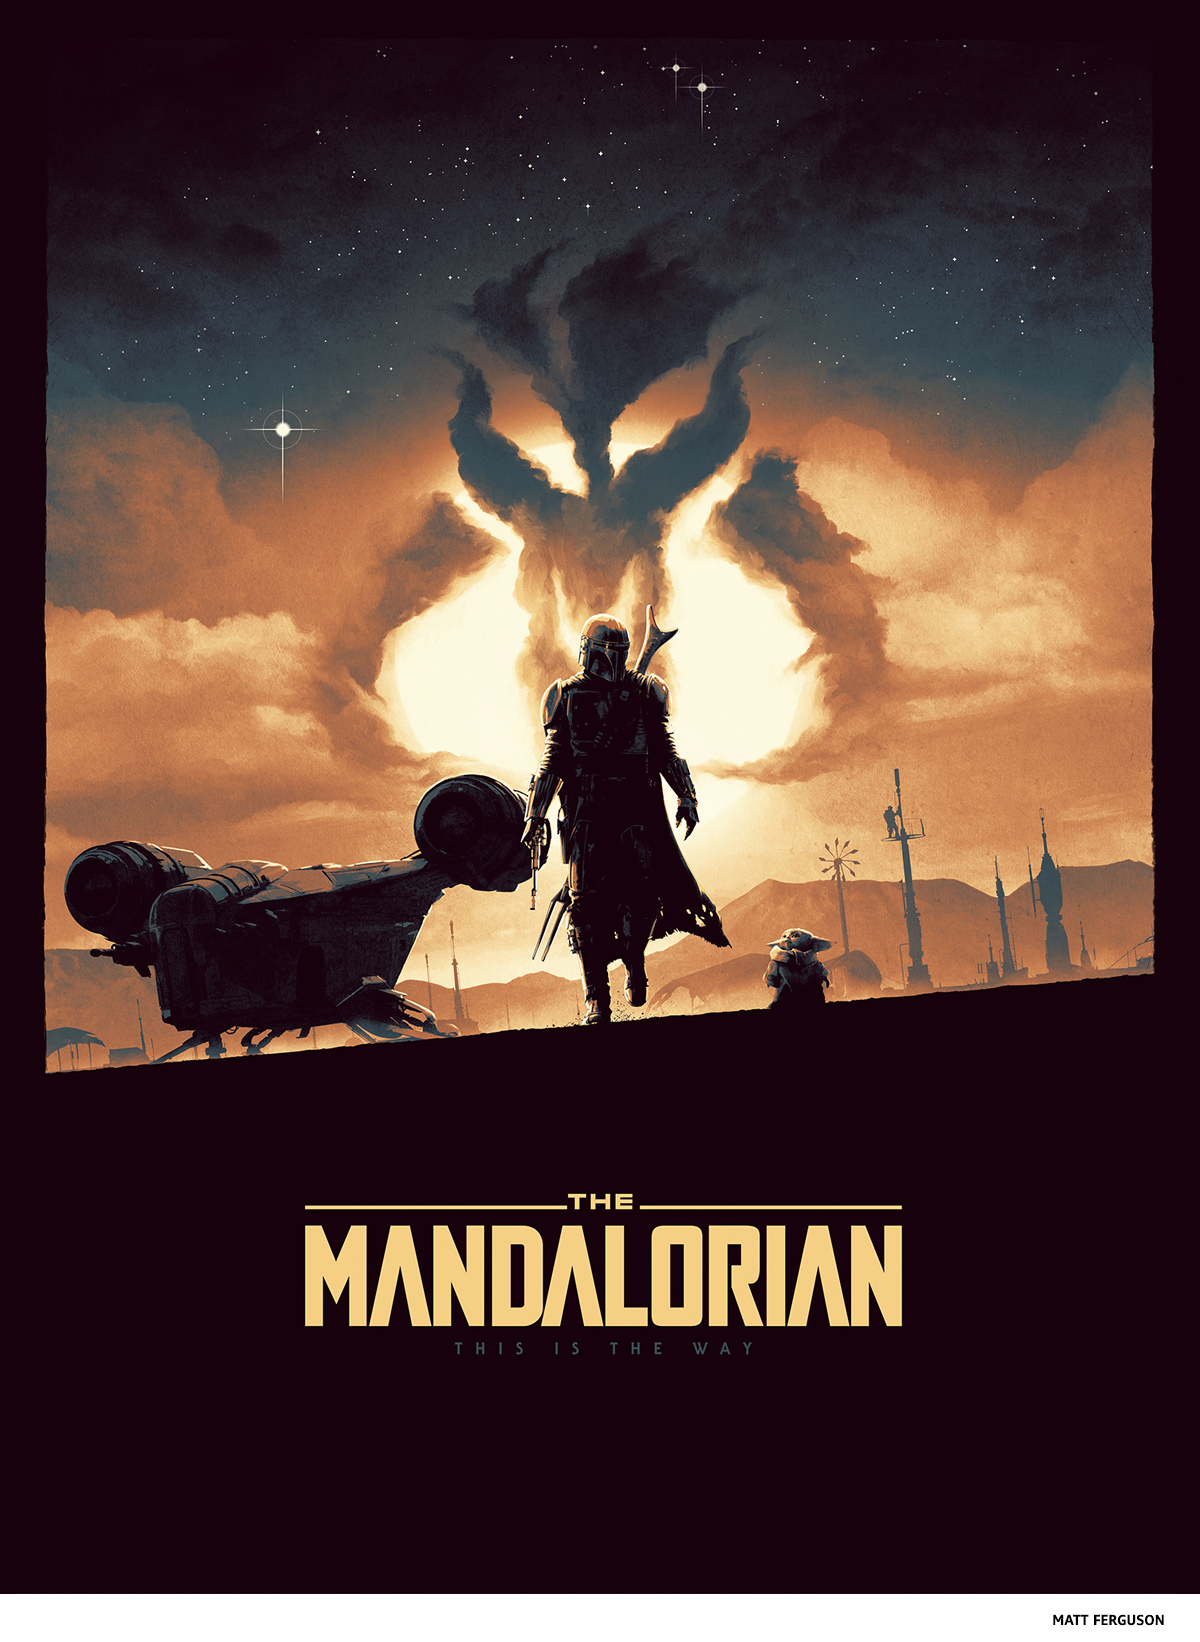 The Mandalorian by Matt Ferguson- science-fiction poster